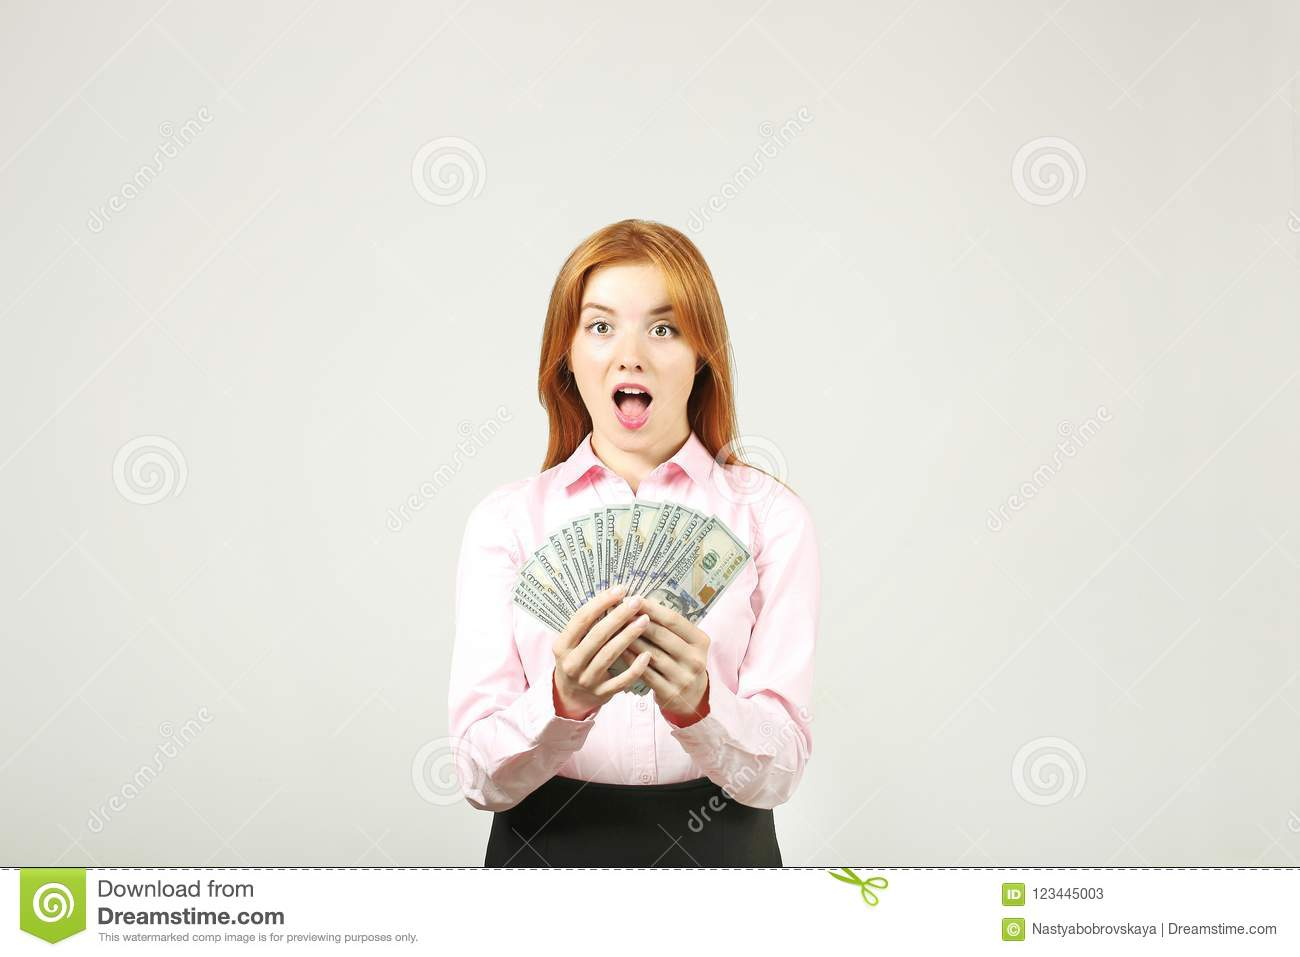 Attractive young businesswoman posing with bunch of USD cash in hands showing positive emotions and happy facial expression.